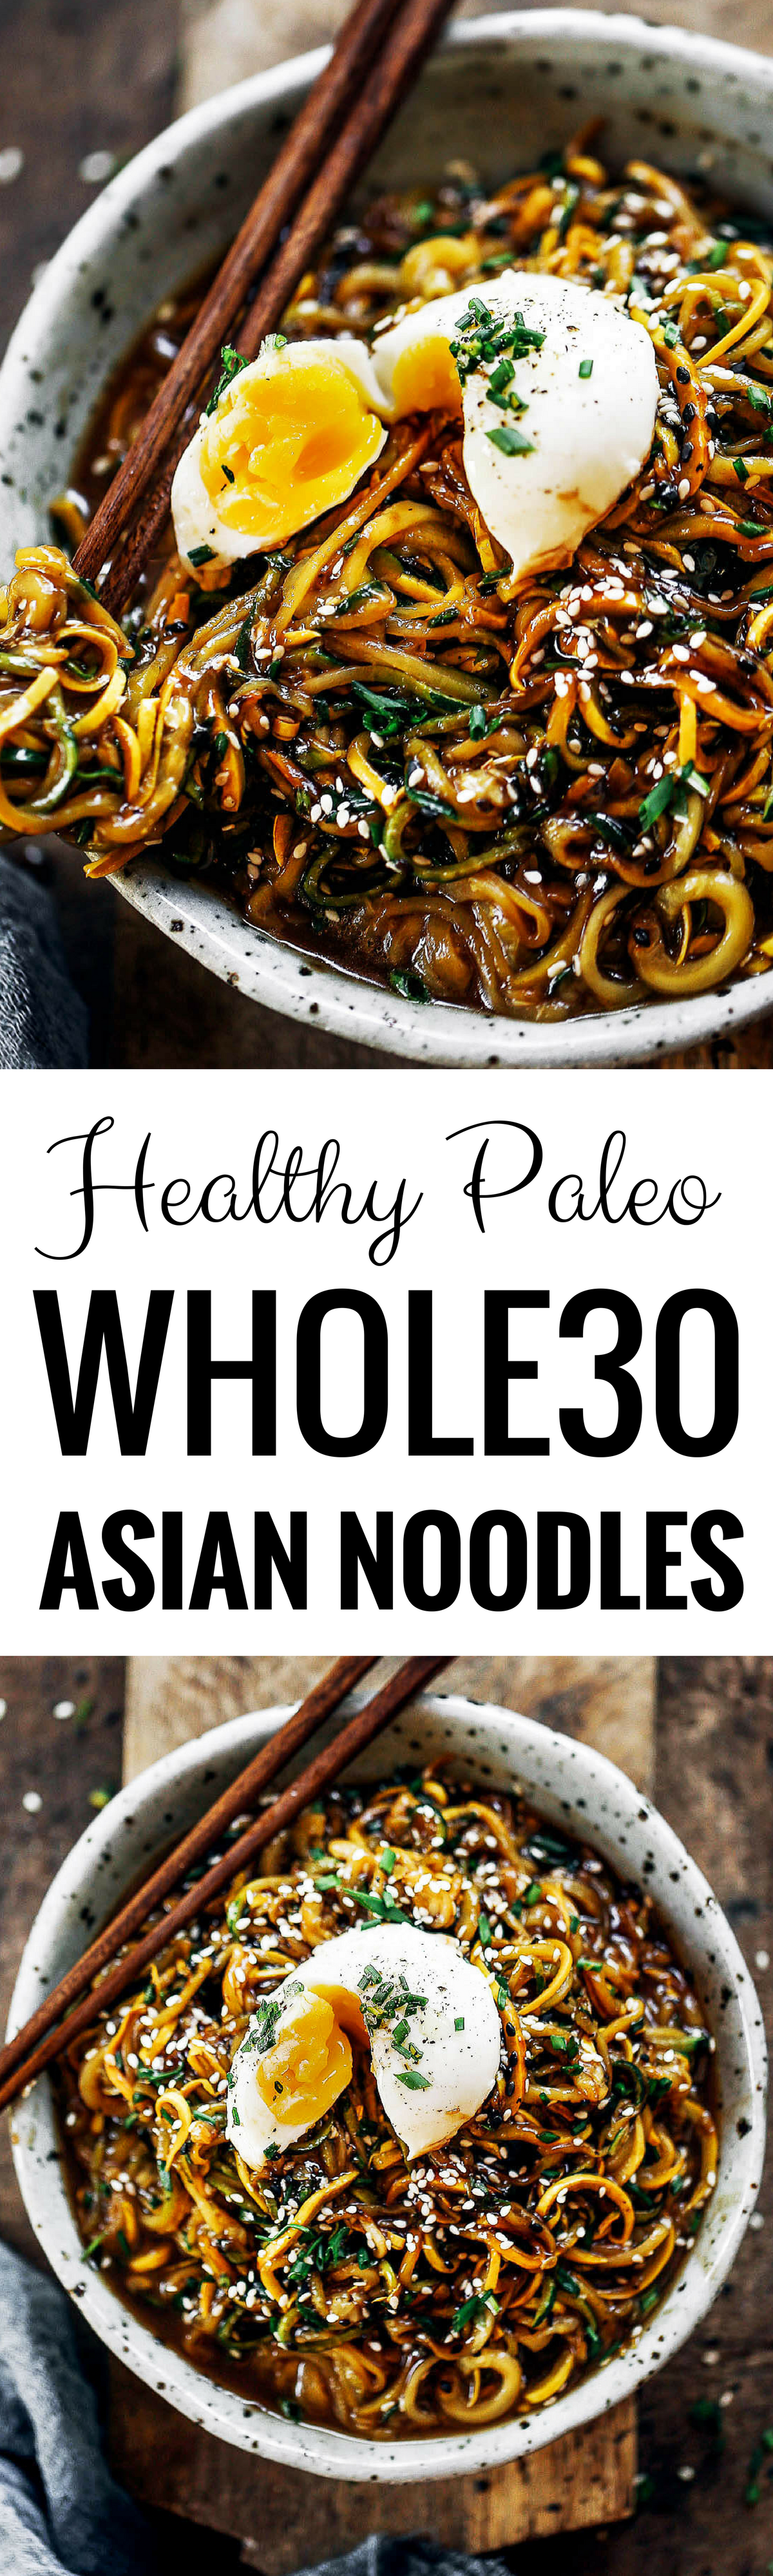 Whole30 asian noodle bowl foodgawker forumfinder Gallery